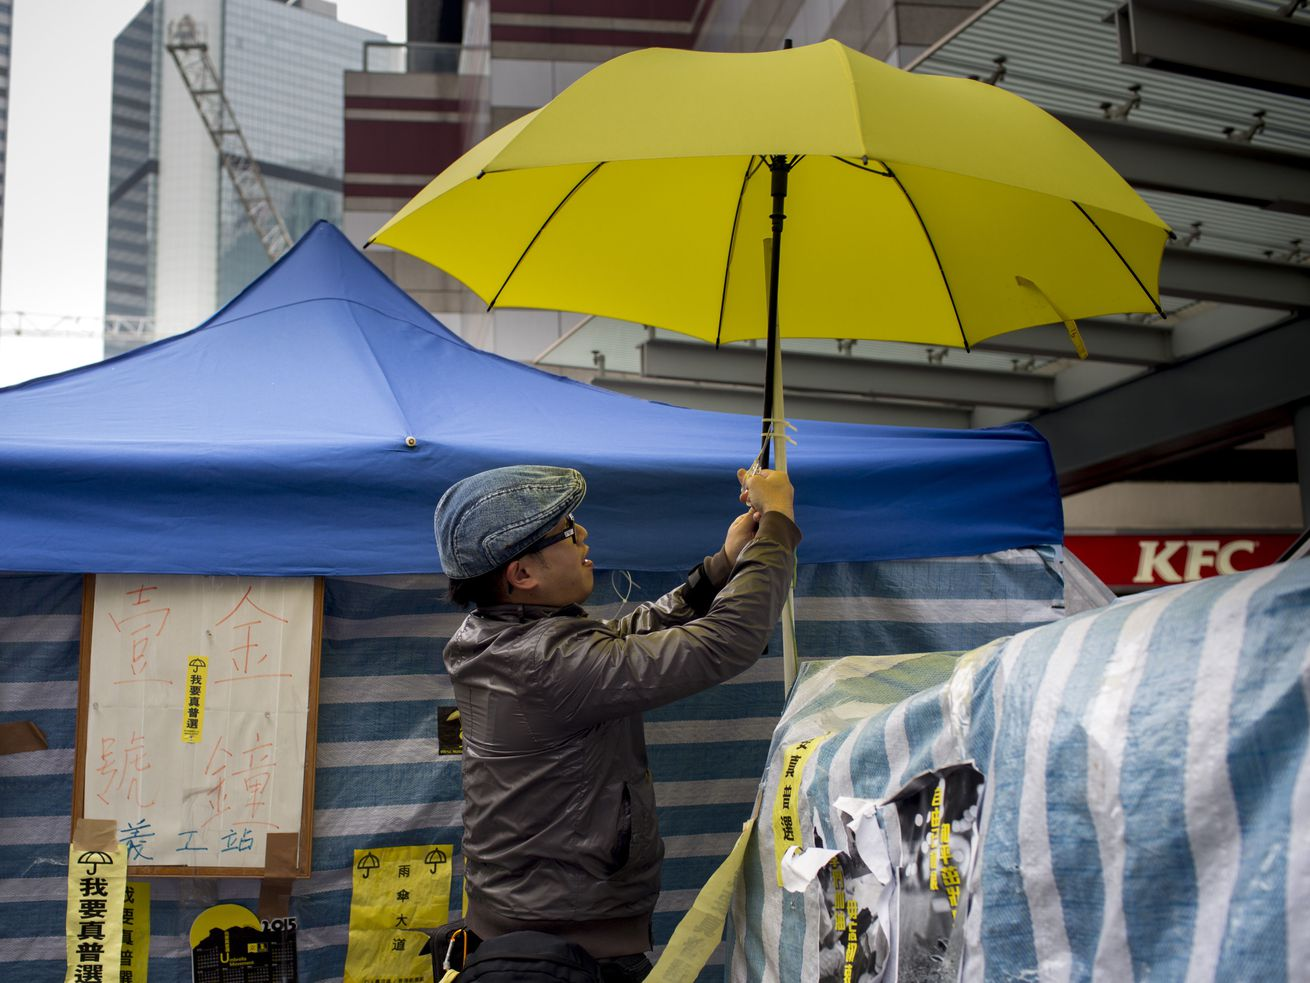 A pro-democracy protester cuts down a yellow umbrella outside Hong Kong's Government complex on December 11, 2014.